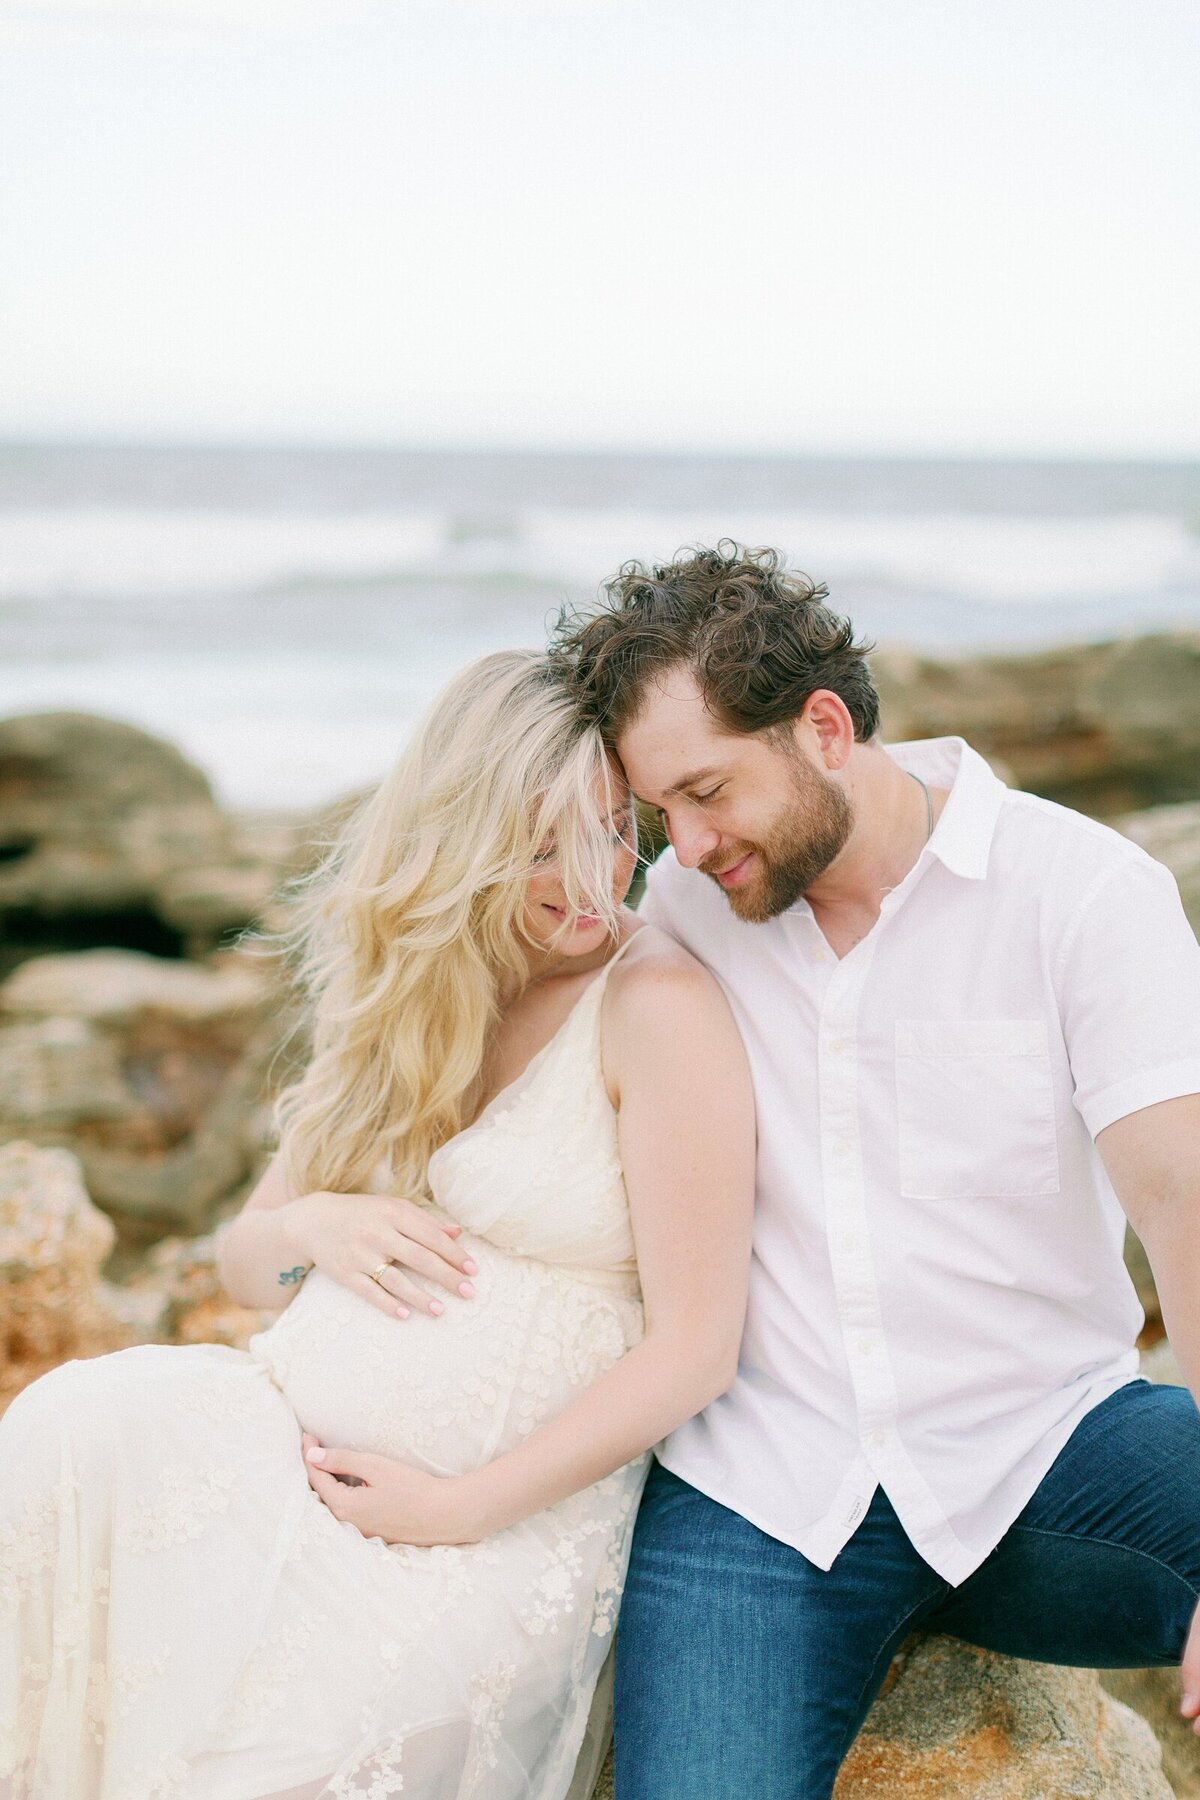 Ashley + Adrian Pamparau Washington Oaks State Park Maternity Session Photographer Casie Marie Photography-102